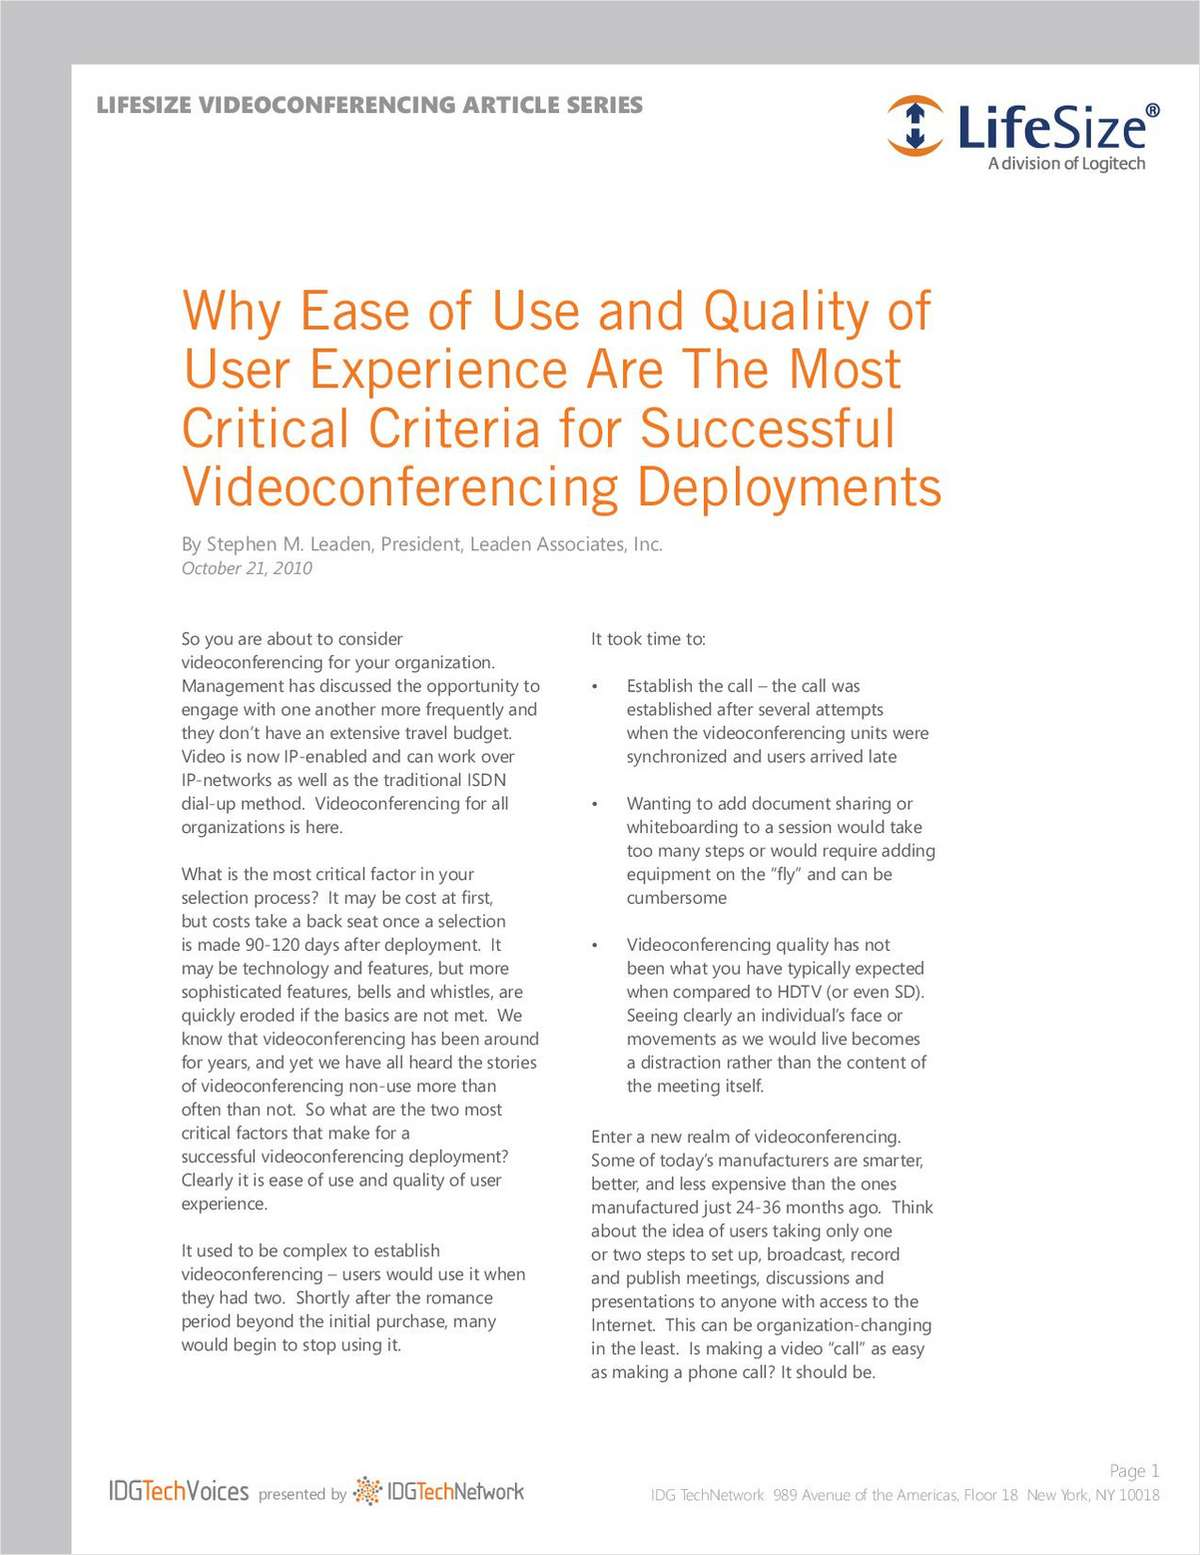 Why Ease of Use and Quality of User Experience Are The Most Critical Criteria for Successful Videoconferencing Deployments